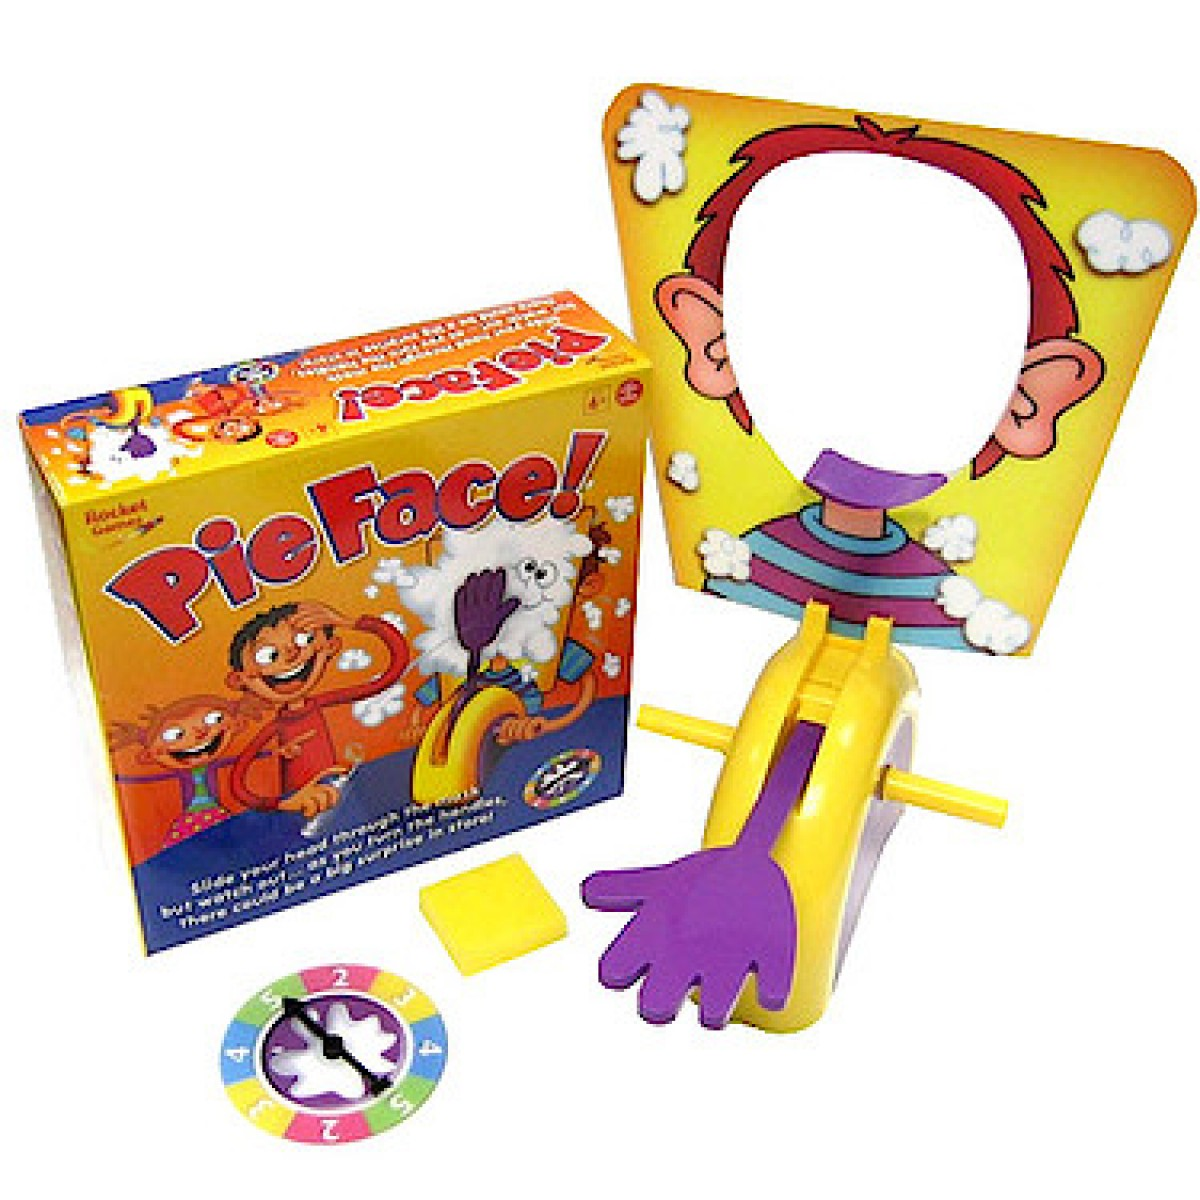 The Pie Face Game by Hasbro features a lot of accessories.